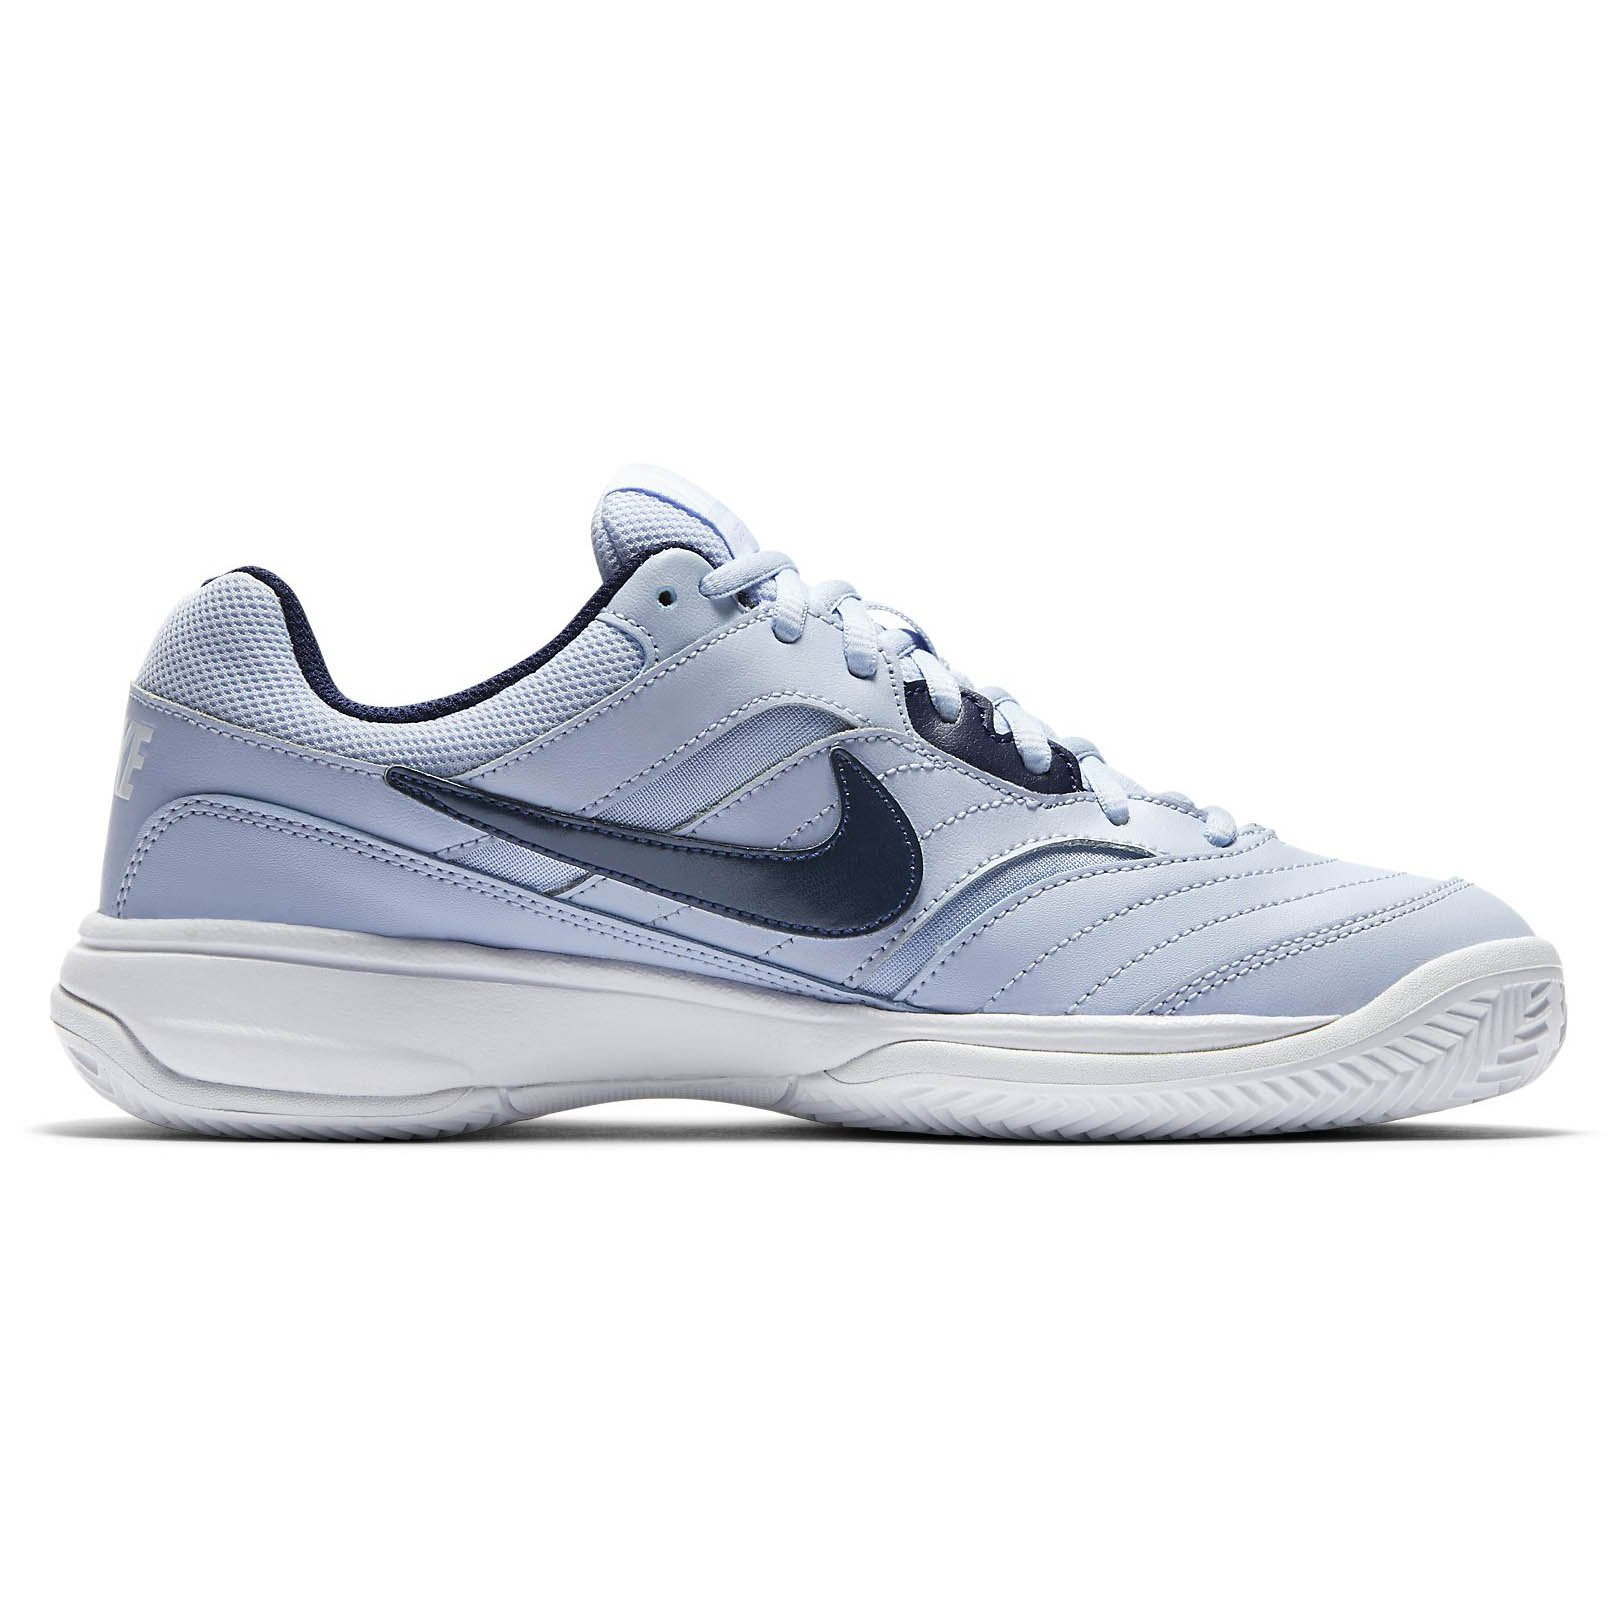 buy online 0a2b5 5e8f8 NIKE WMNS NIKE COURT LITE CLY - gallery 2